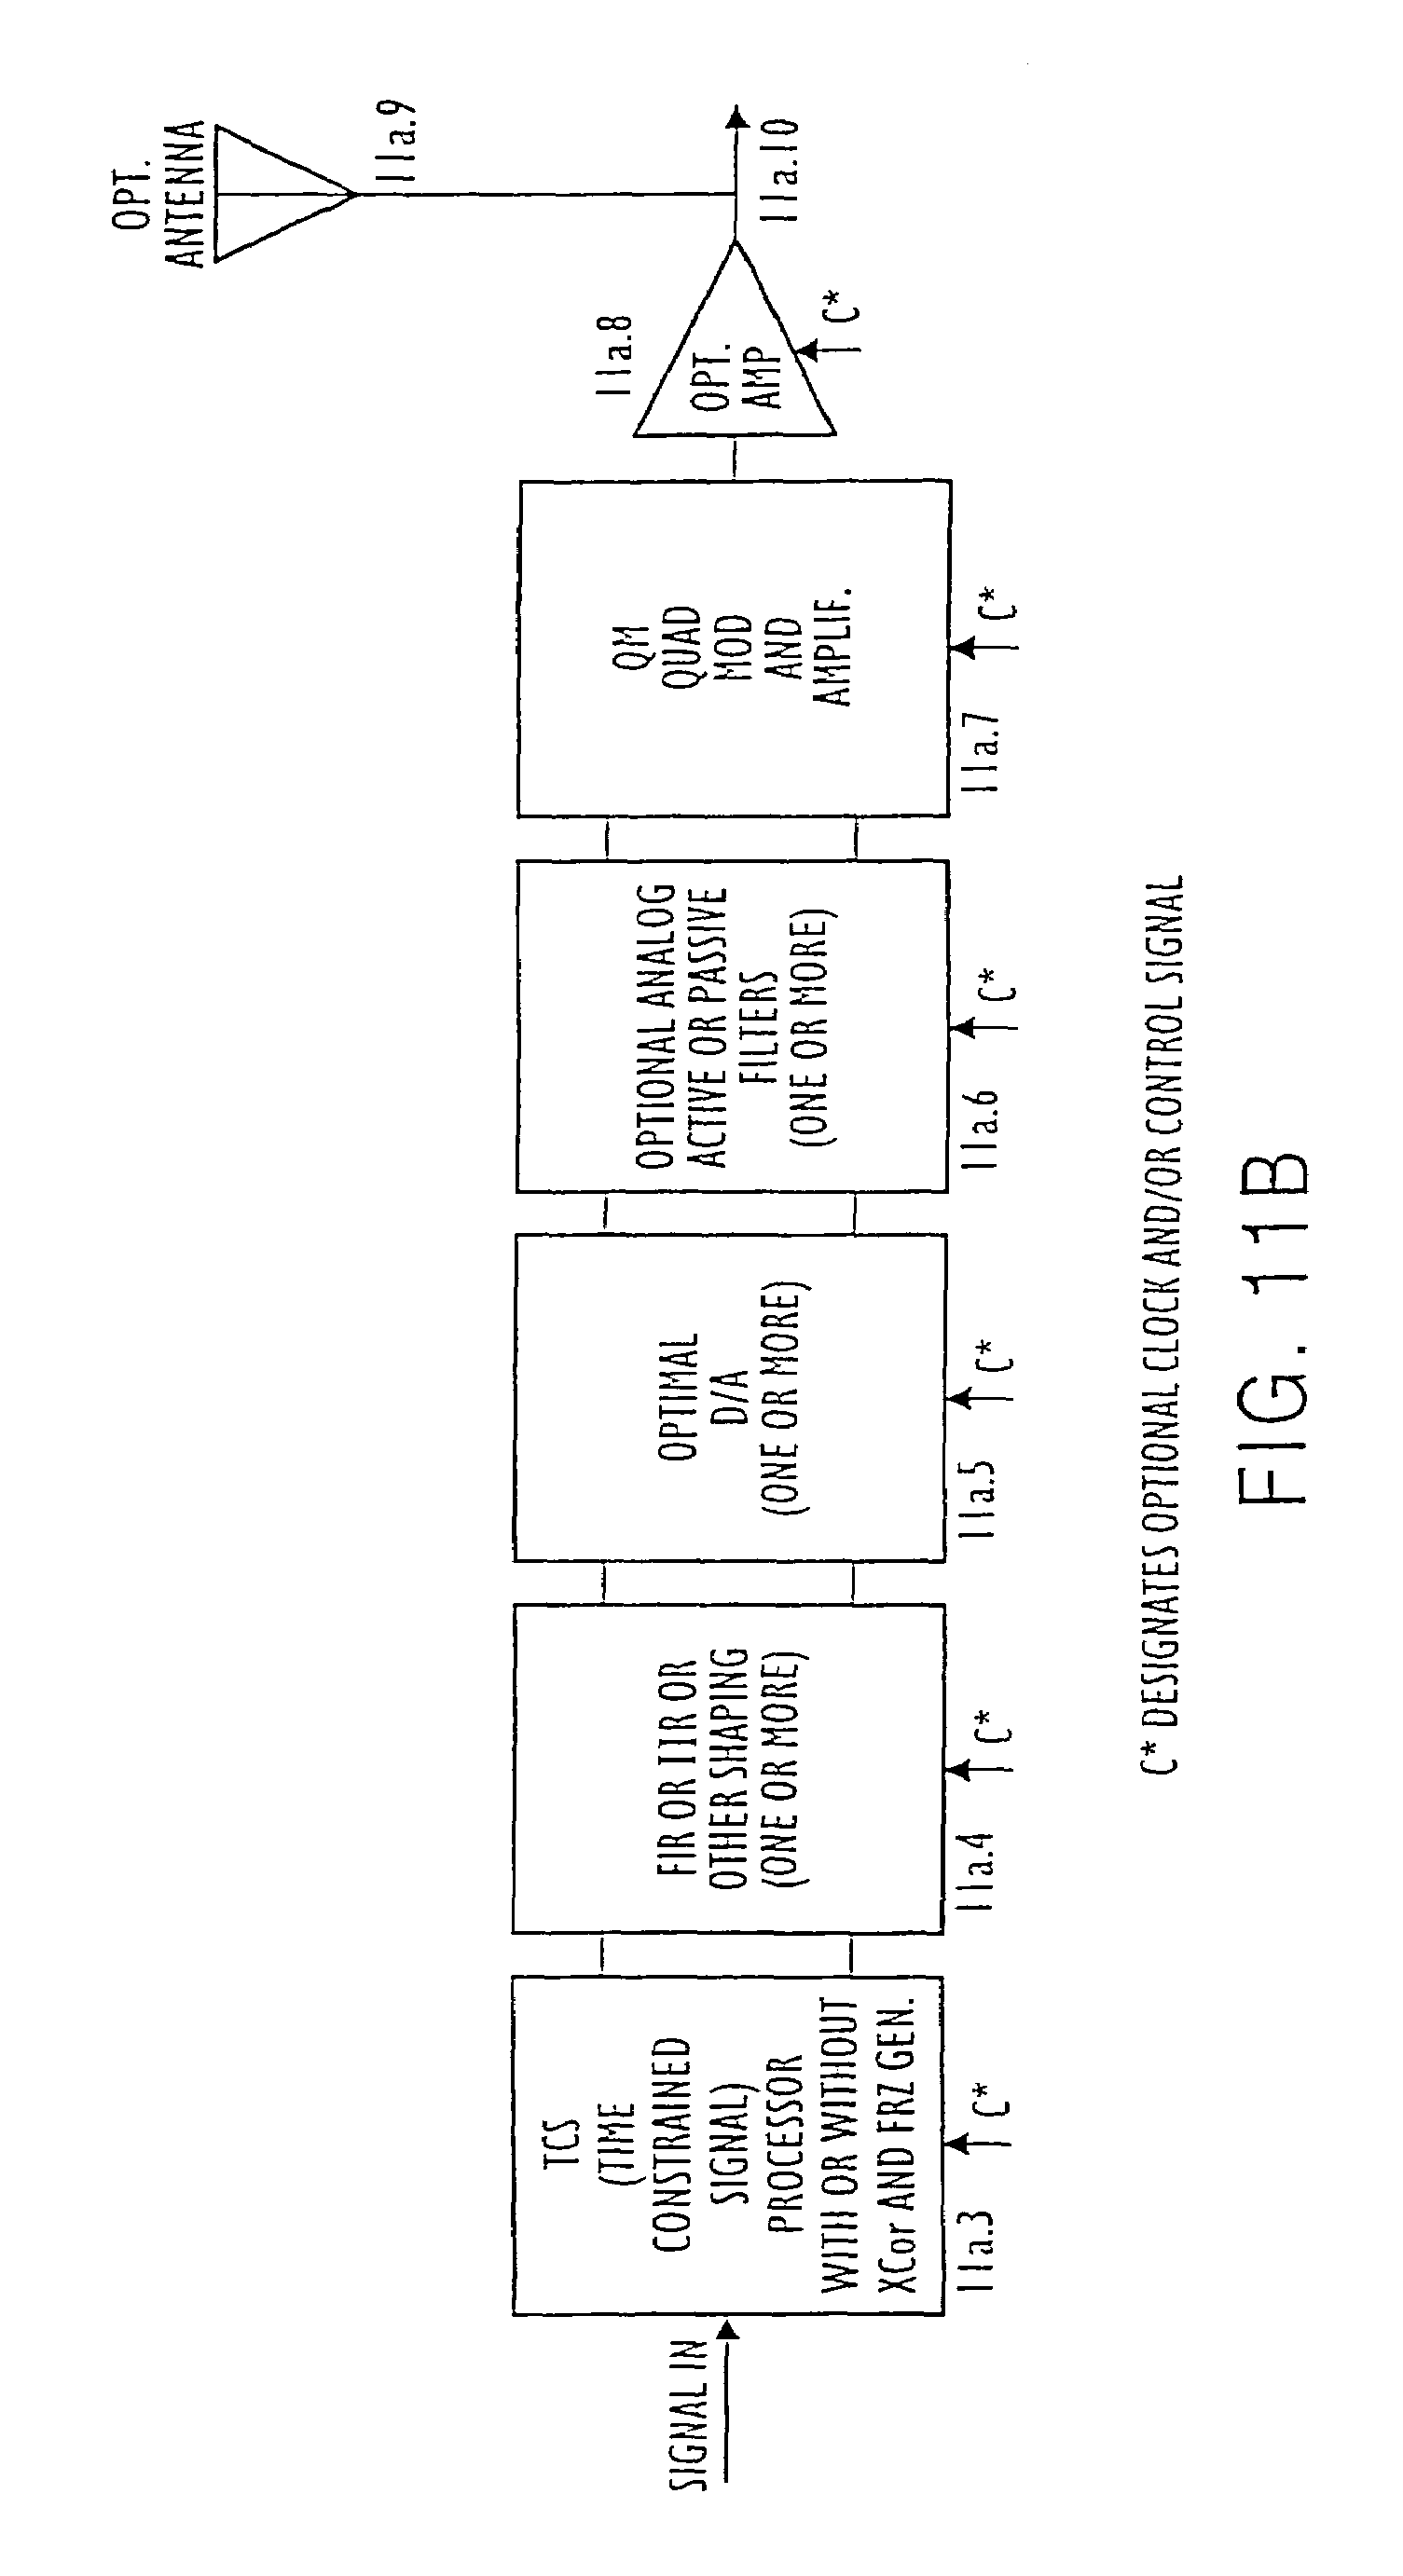 Patente Us7110433 Spread Spectrum Cross Correlated And Filtered Active Passive Filters Patent Drawing